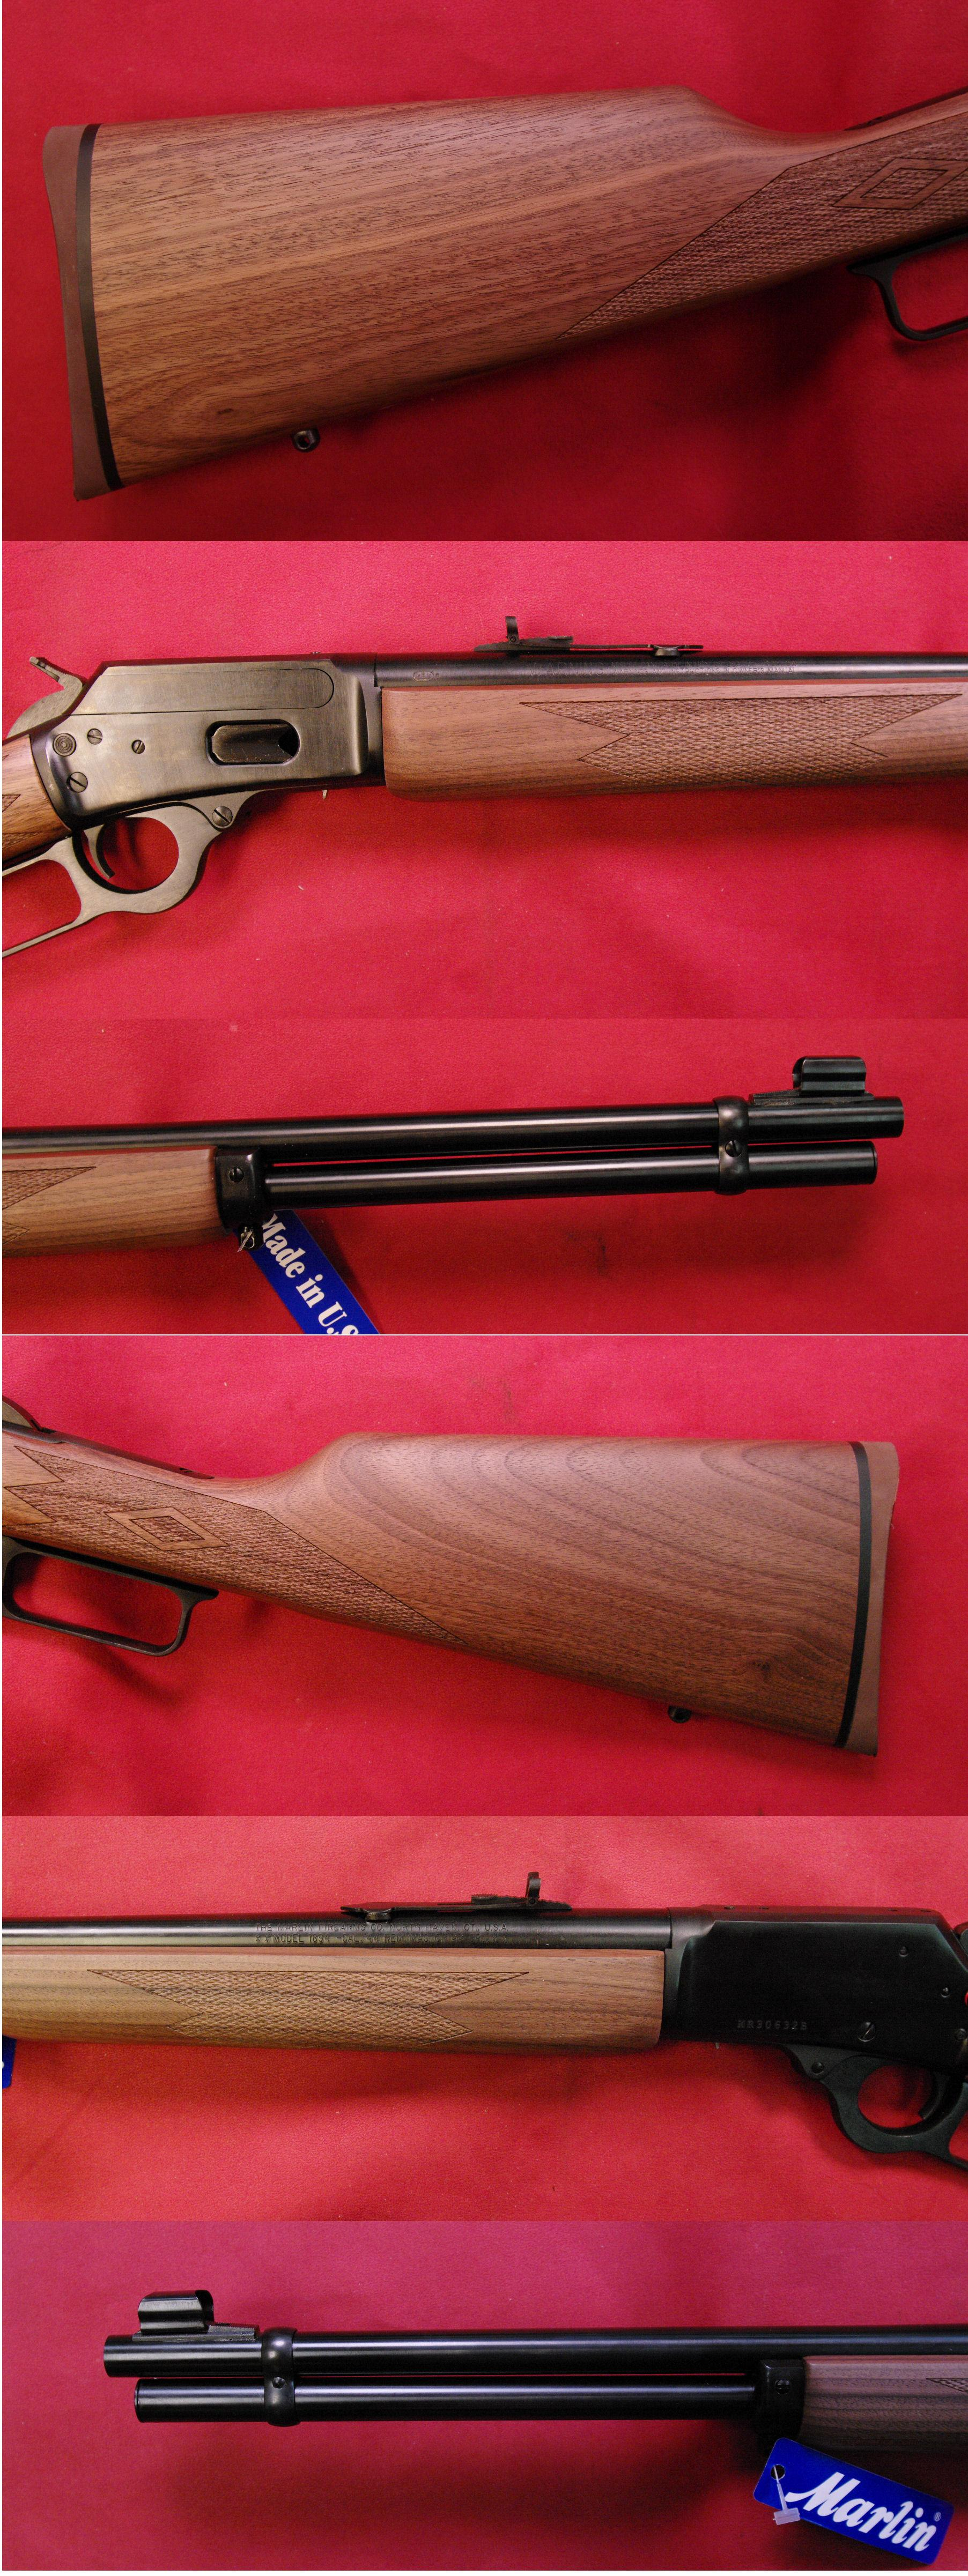 Marlin 1894 44 Spl/44 Mag   Guns > Rifles > Marlin Rifles > Modern > Lever Action